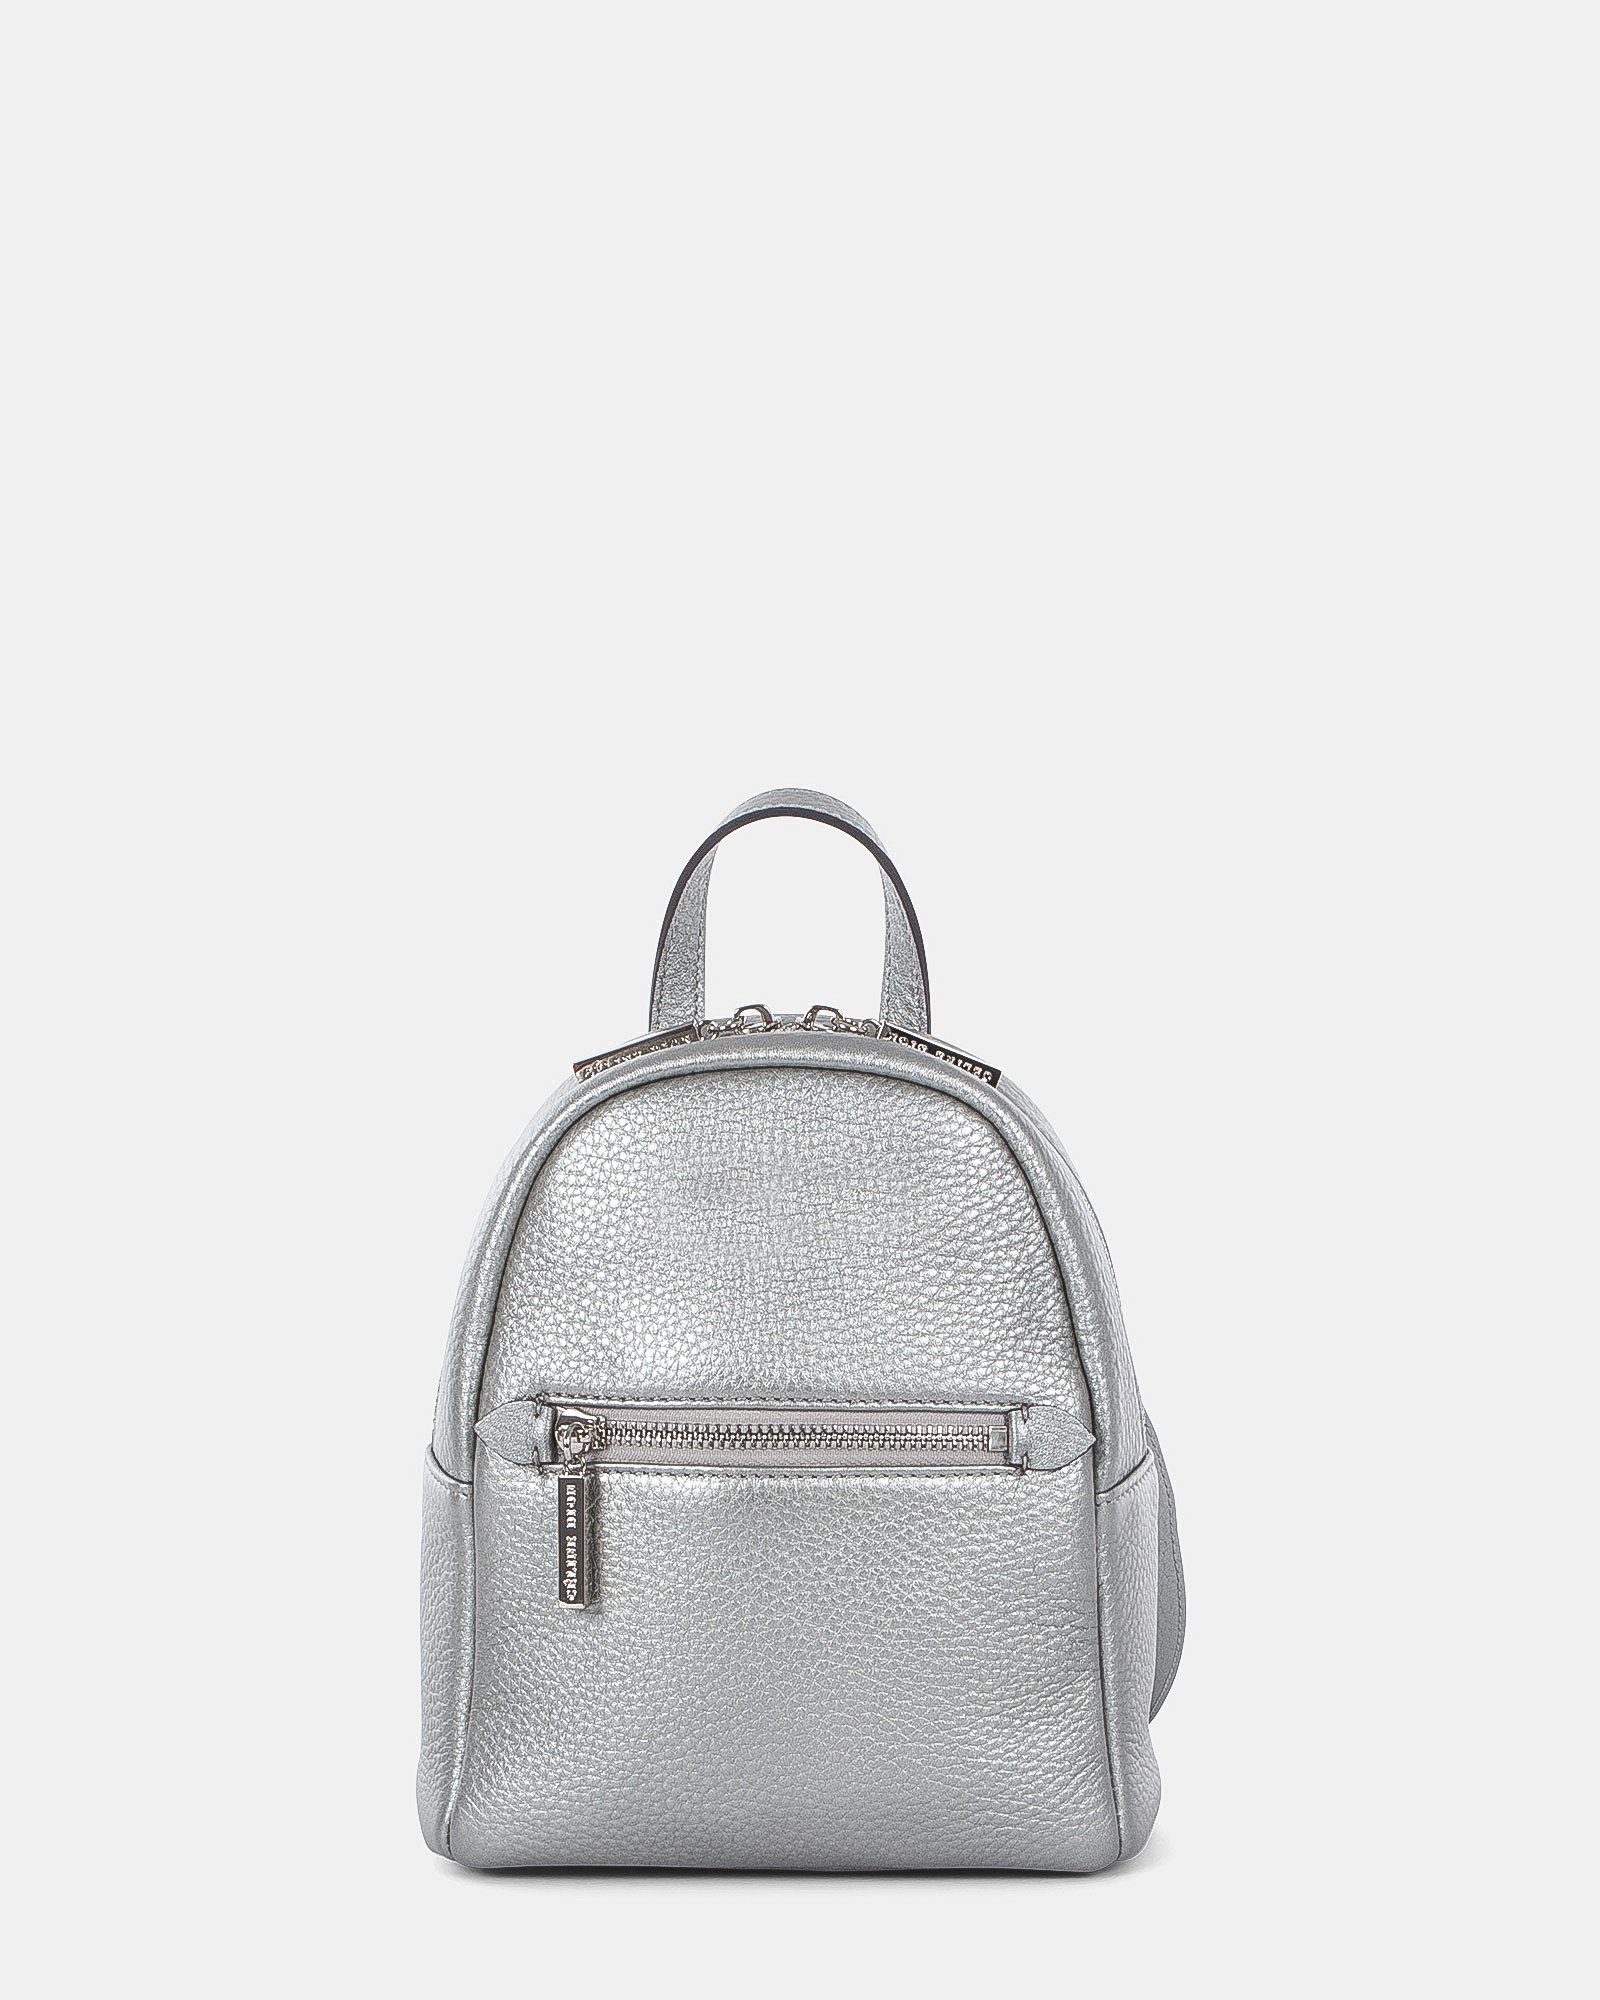 ADAGIO - MINI BACKPACK - Céline Dion - Zoom